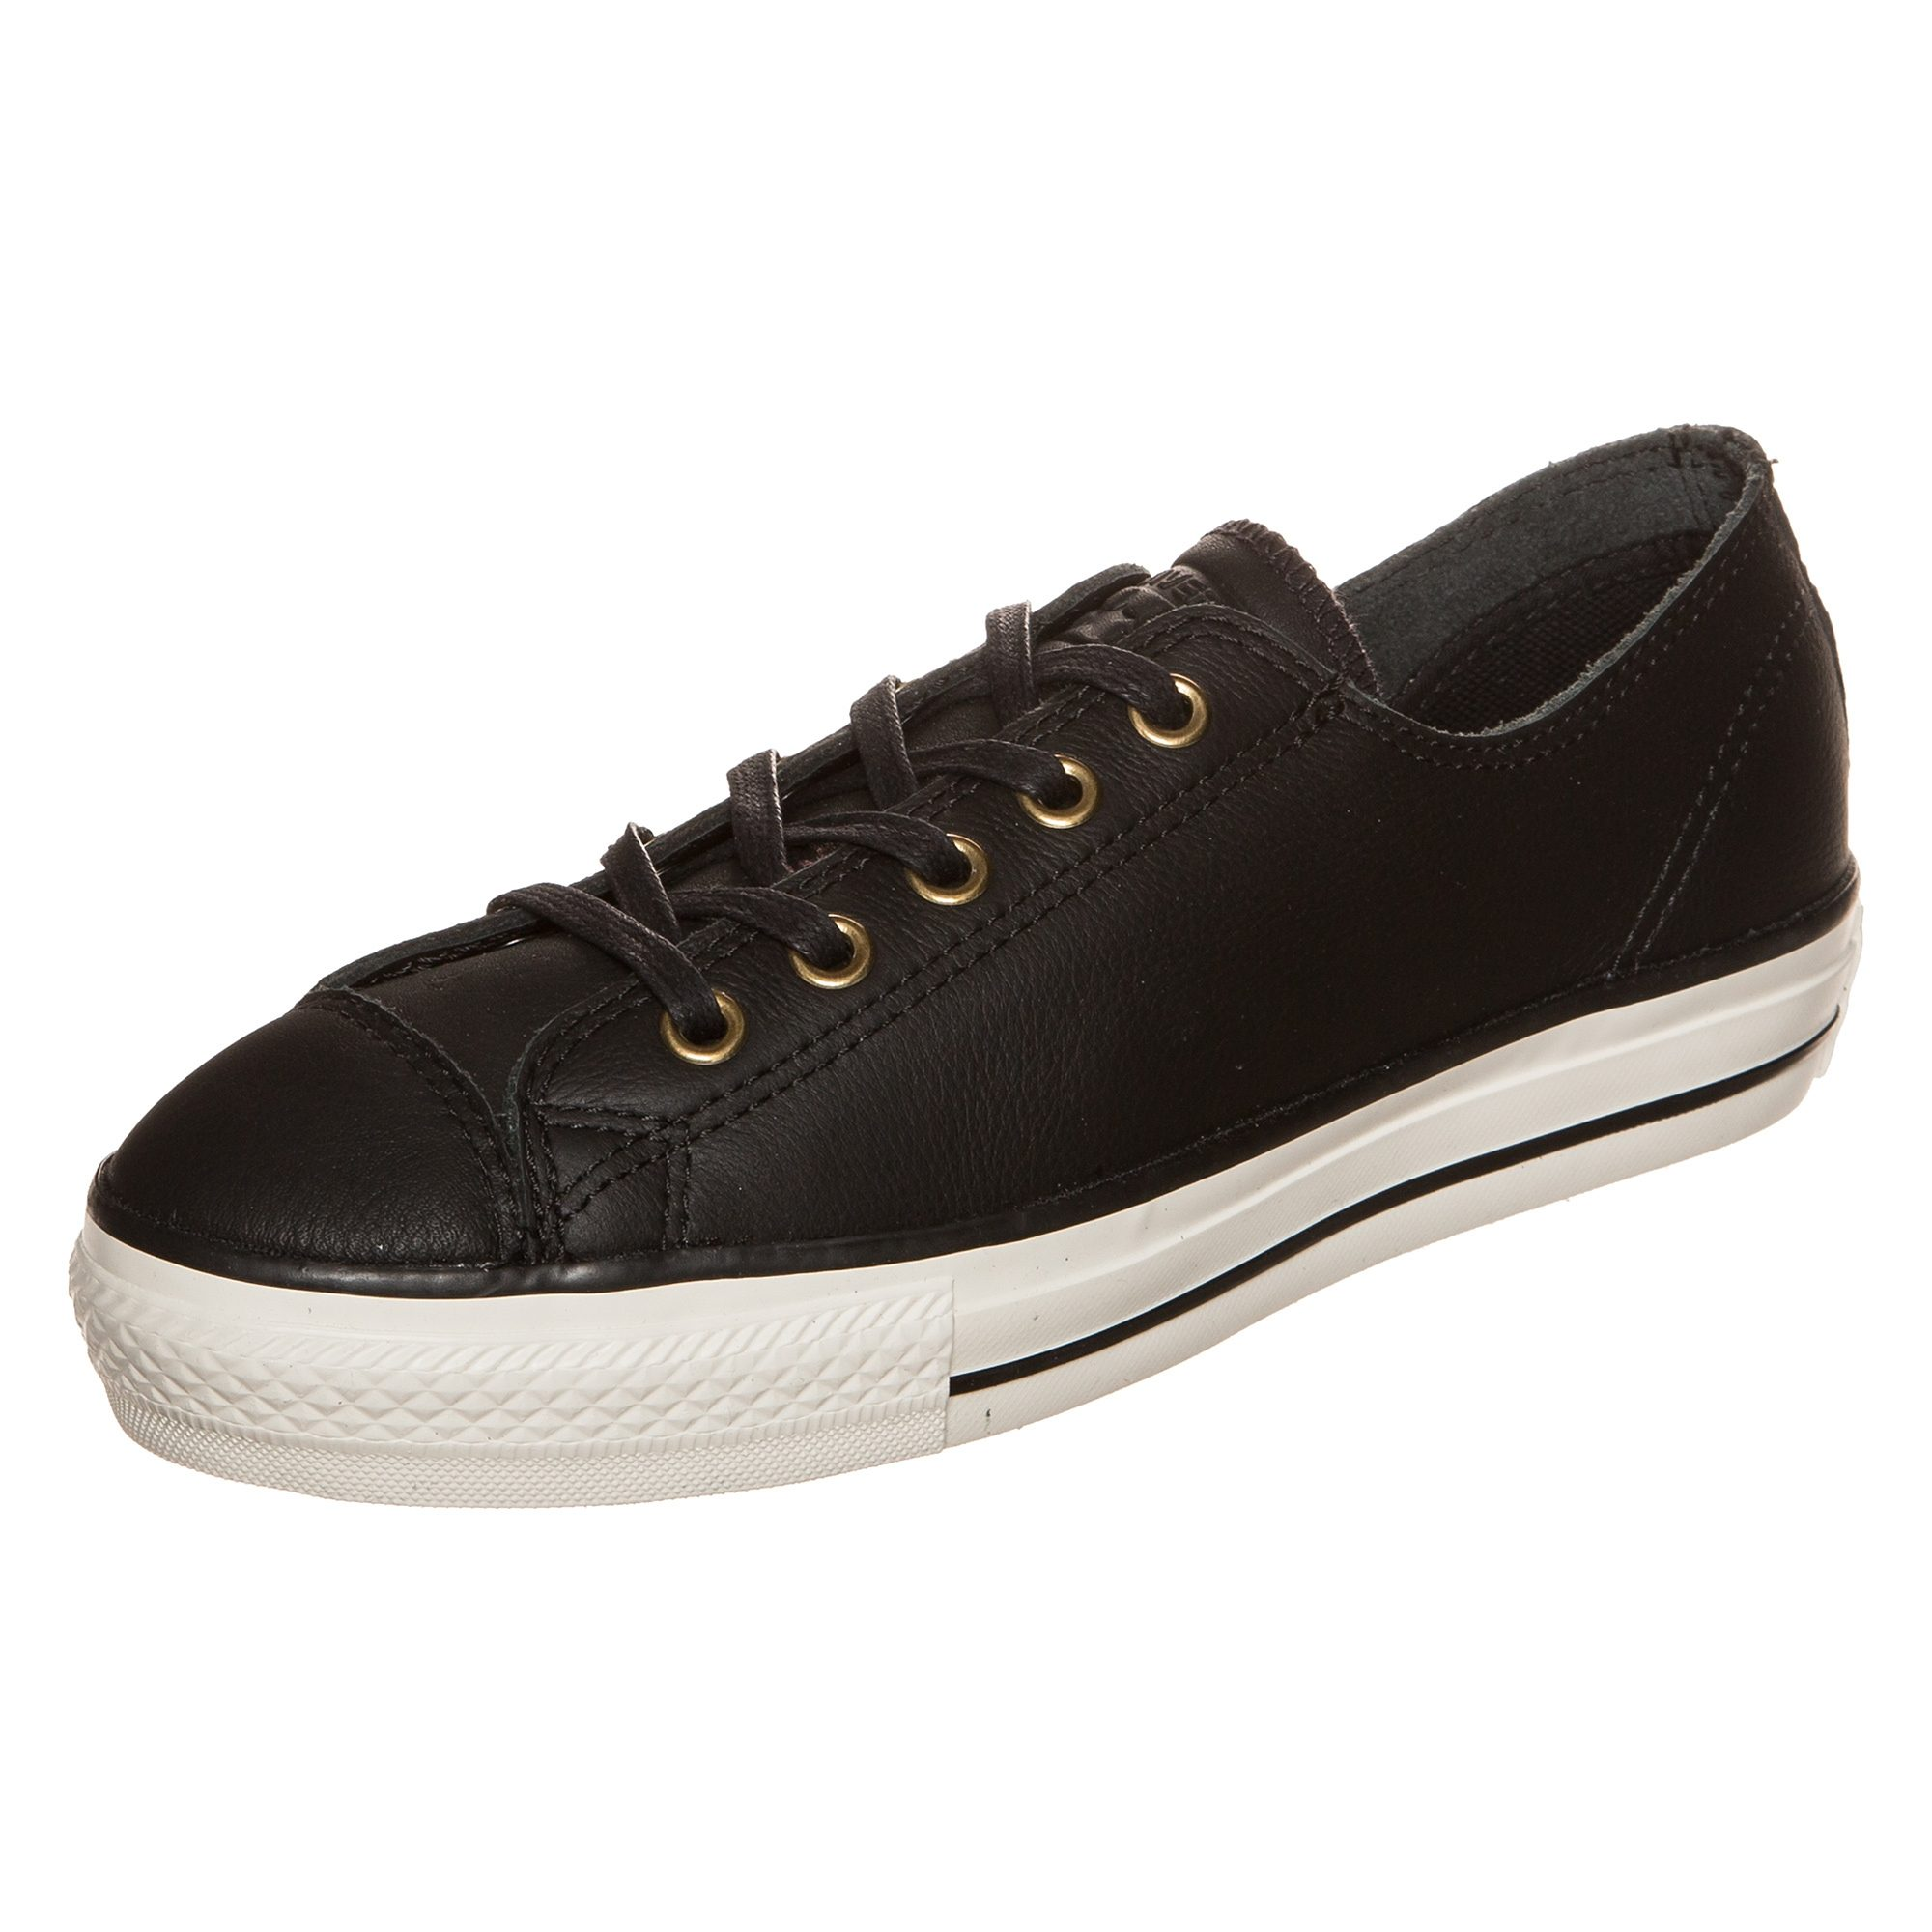 Converse Chuck Taylor All Star High Line OX Sneaker